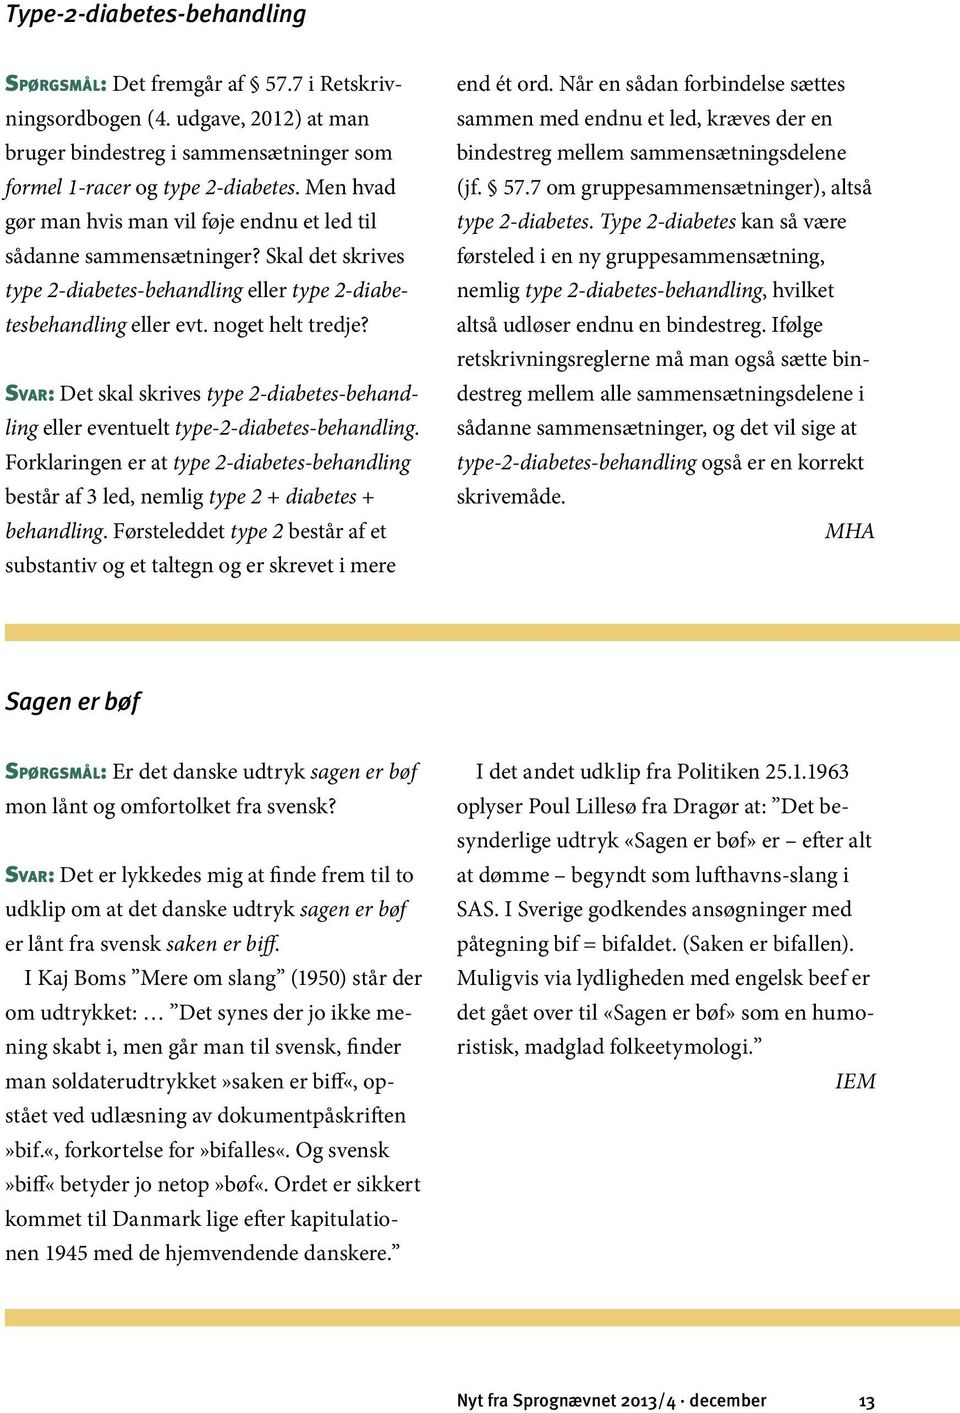 Svar: Det skal skrives type 2-diabetes-behandling eller eventuelt type-2-diabetes-behandling. Forklaringen er at type 2-diabetes-behandling består af 3 led, nemlig type 2 + diabetes + behandling.